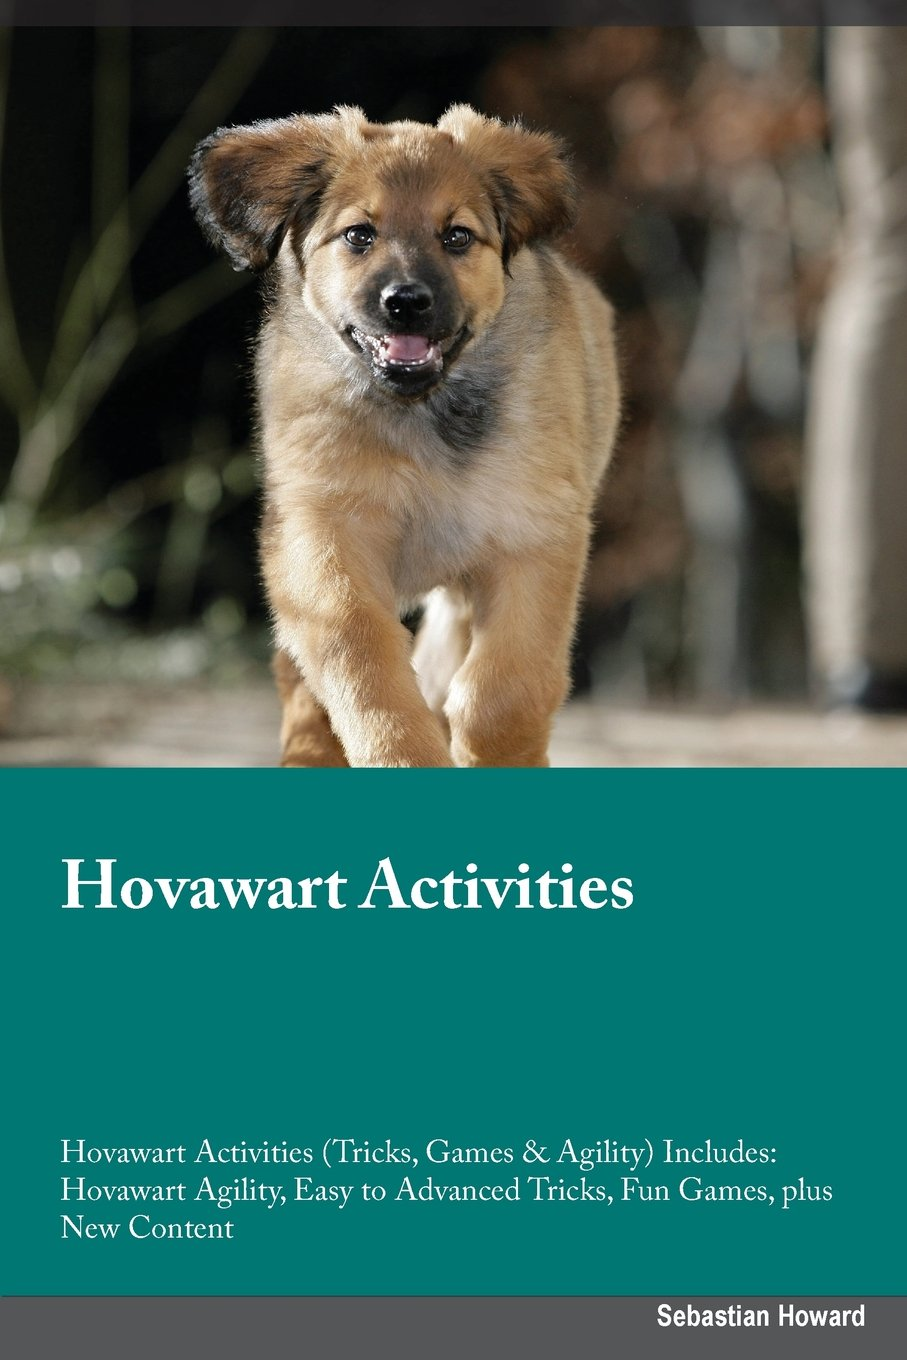 Read Online Hovawart Activities Hovawart Activities (Tricks, Games & Agility) Includes: Hovawart Agility, Easy to Advanced Tricks, Fun Games, plus New Content pdf